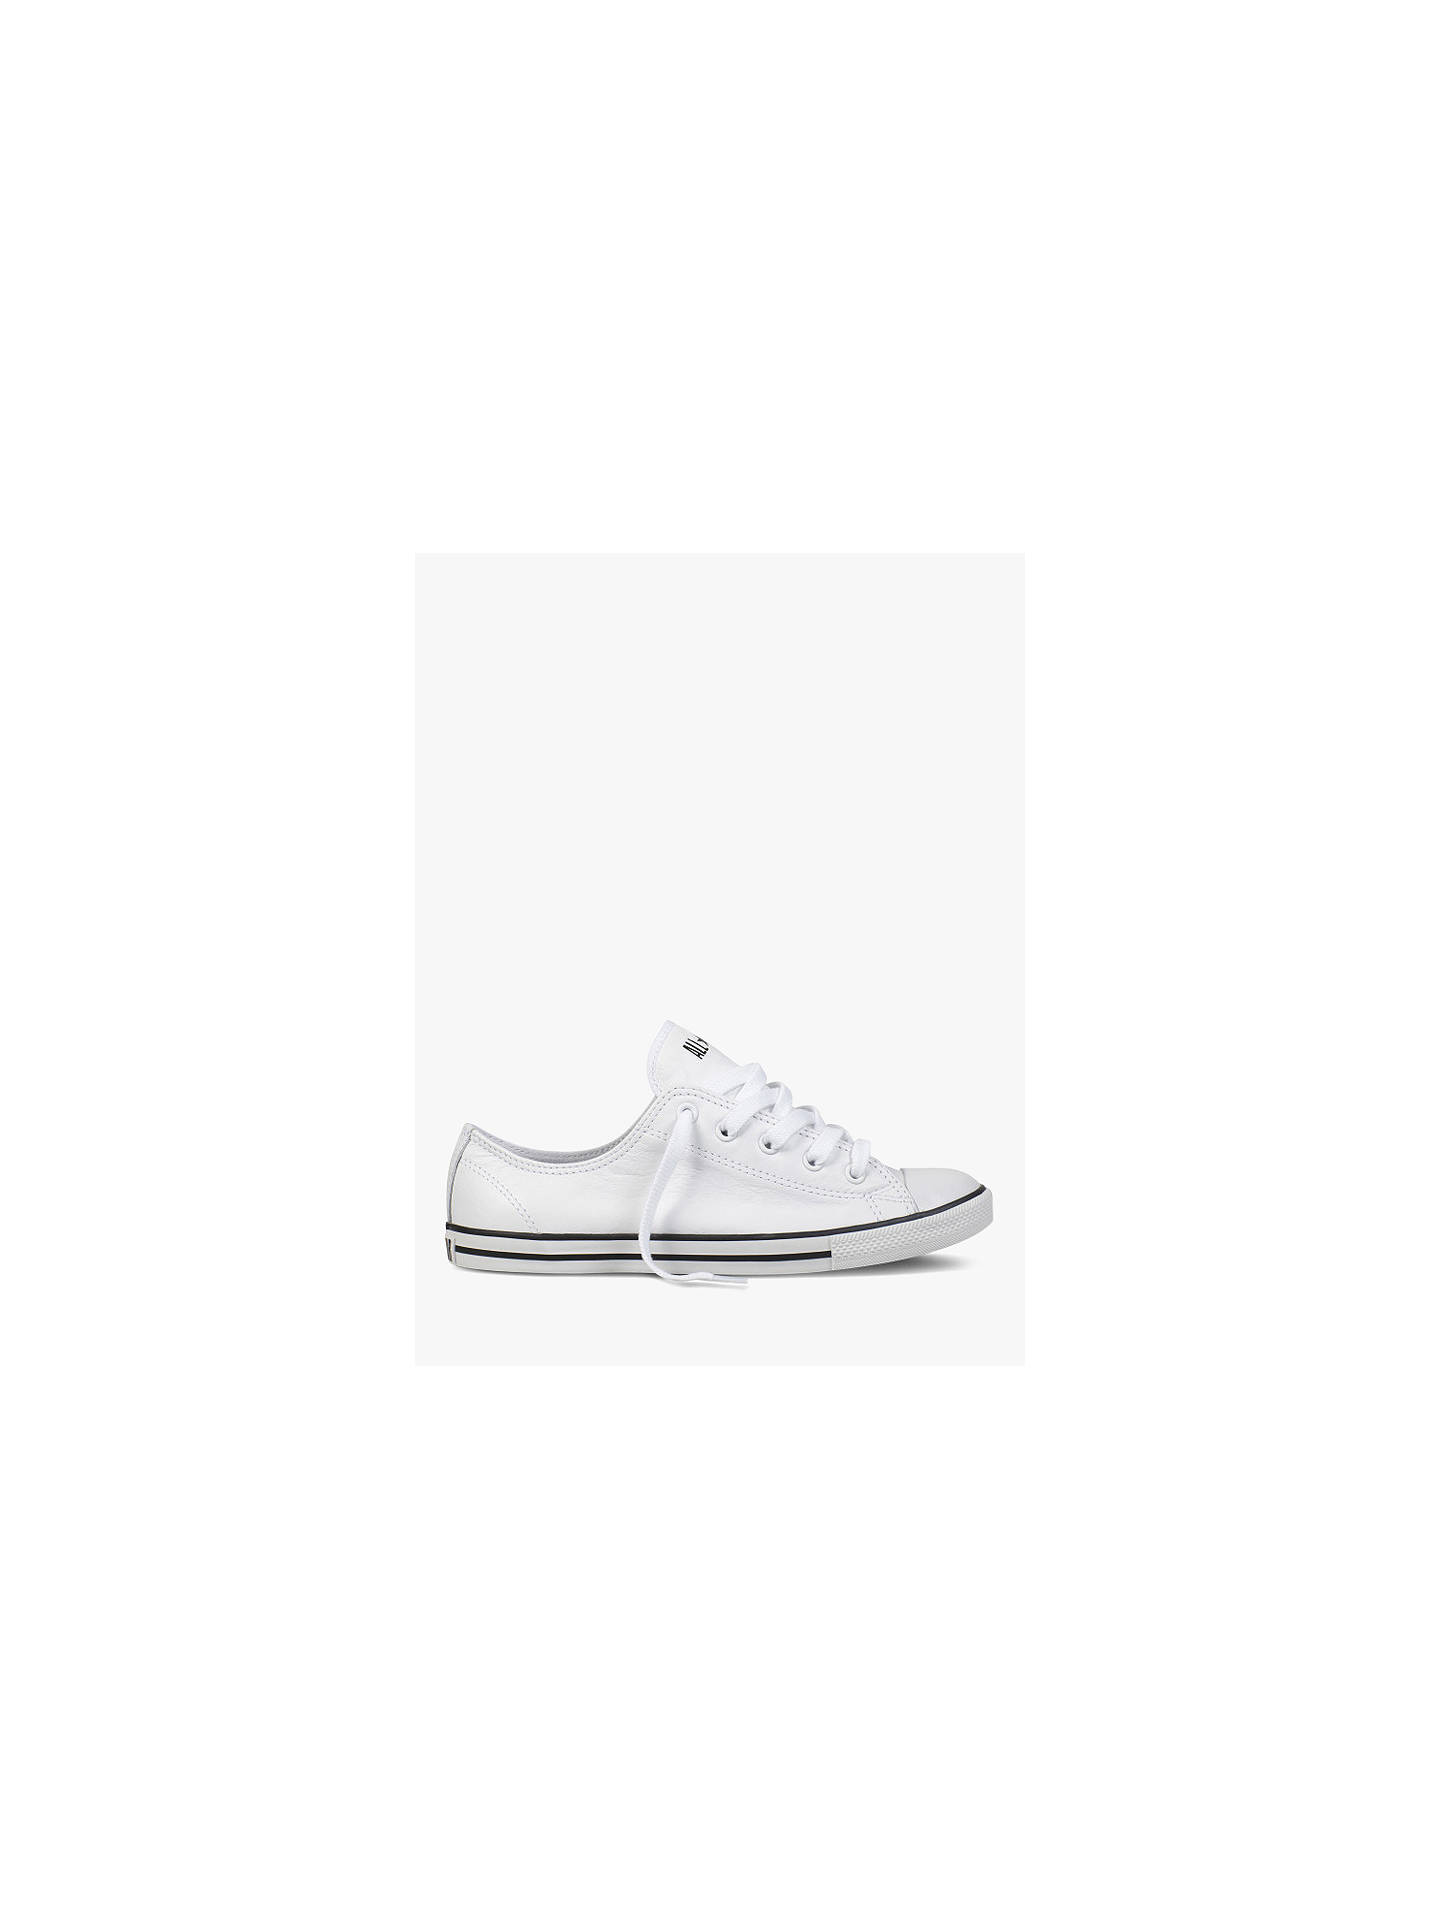 41f26002ec3c75 Converse Chuck Taylor All Star Women s Dainty Leather Trainers ...